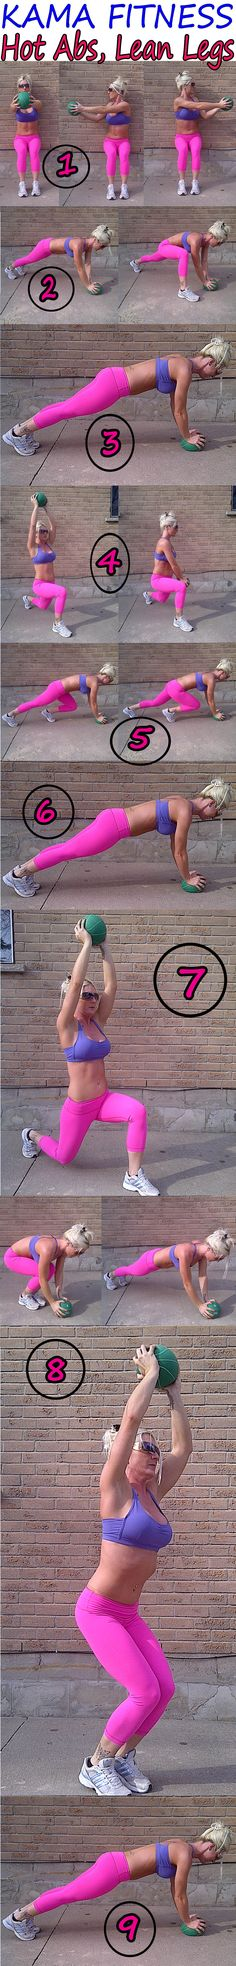 Hello Ladies and gents! Here we are, day two of the 21 days 'till summer challenge. Today's workout is all about those Hot Abs & Lean Legs! When I created this workou. Fitness Workouts, Kama Fitness, 7 Workout, Fitness Diet, Health Fitness, Ball Workouts, Workout Routines, Pilates, Lean Legs